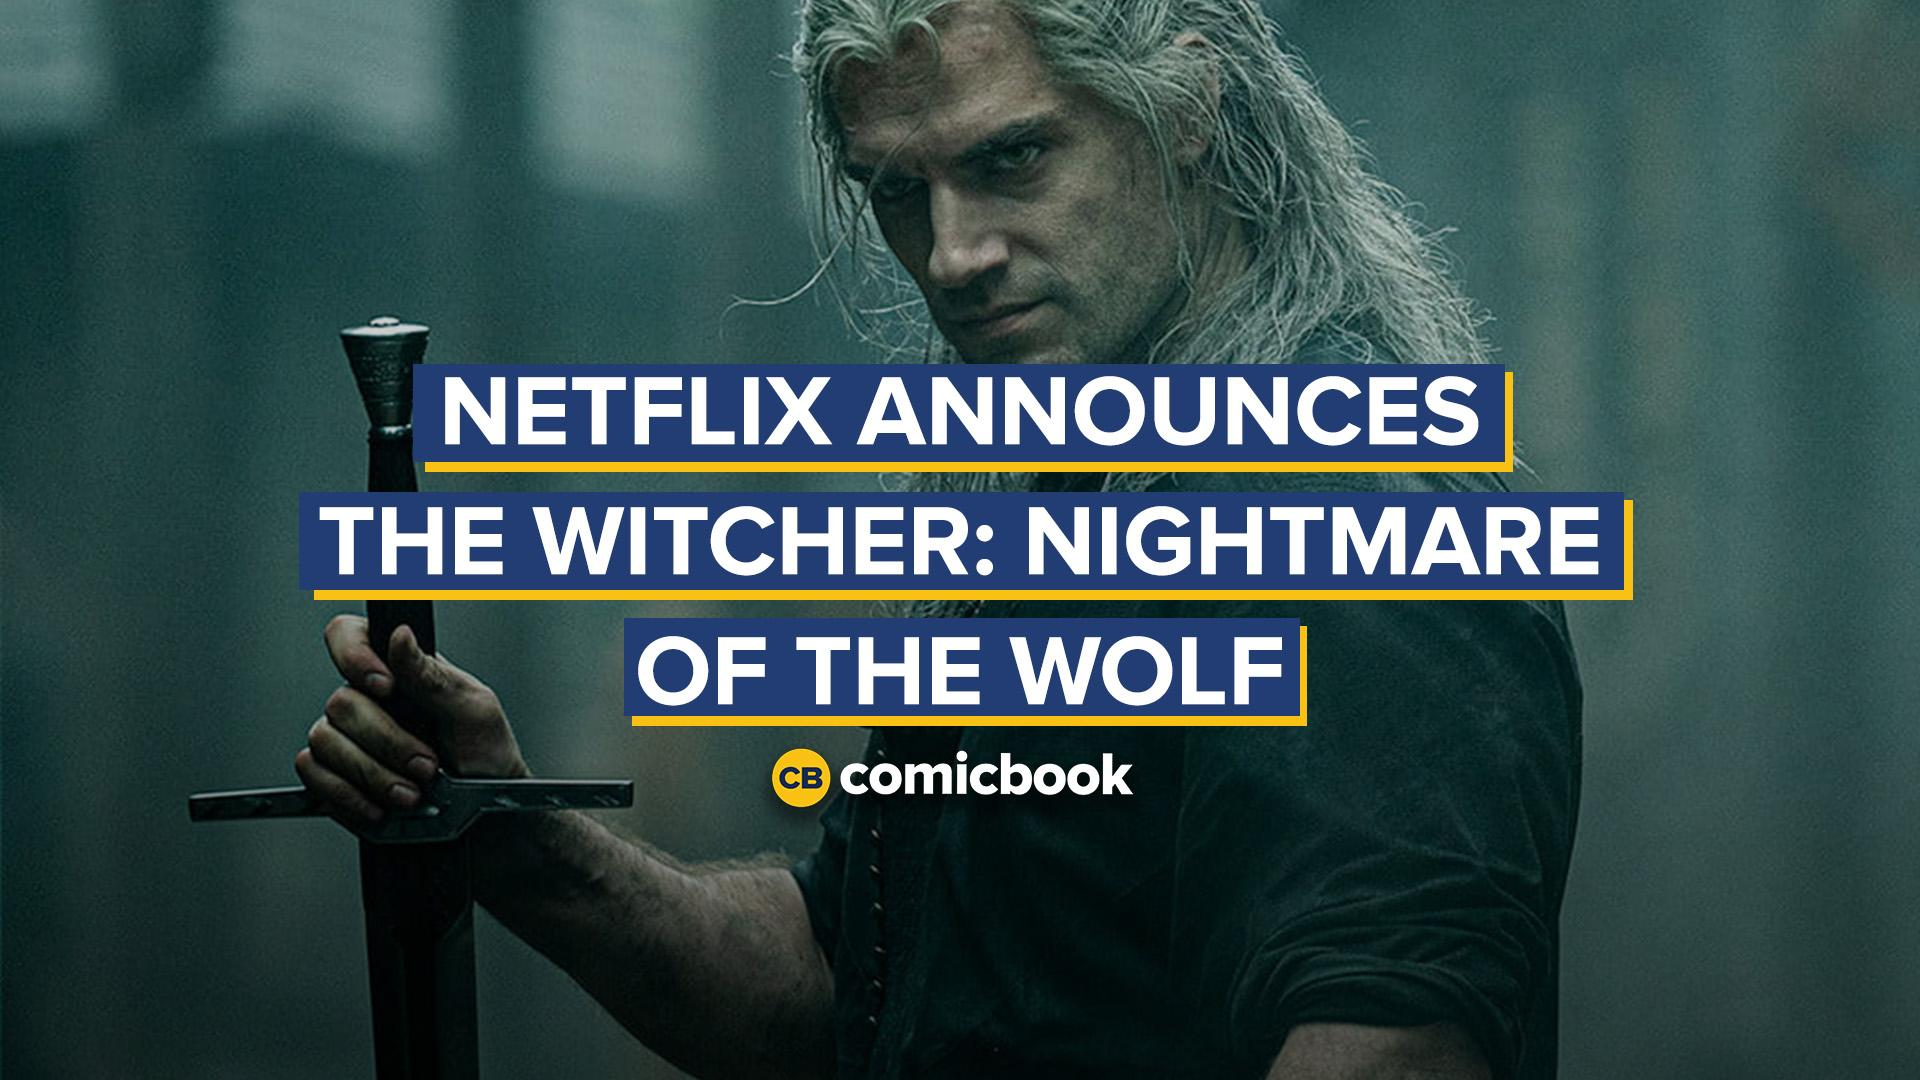 Netflix Announces 'The Witcher: Nightmare of the Wolf' screen capture